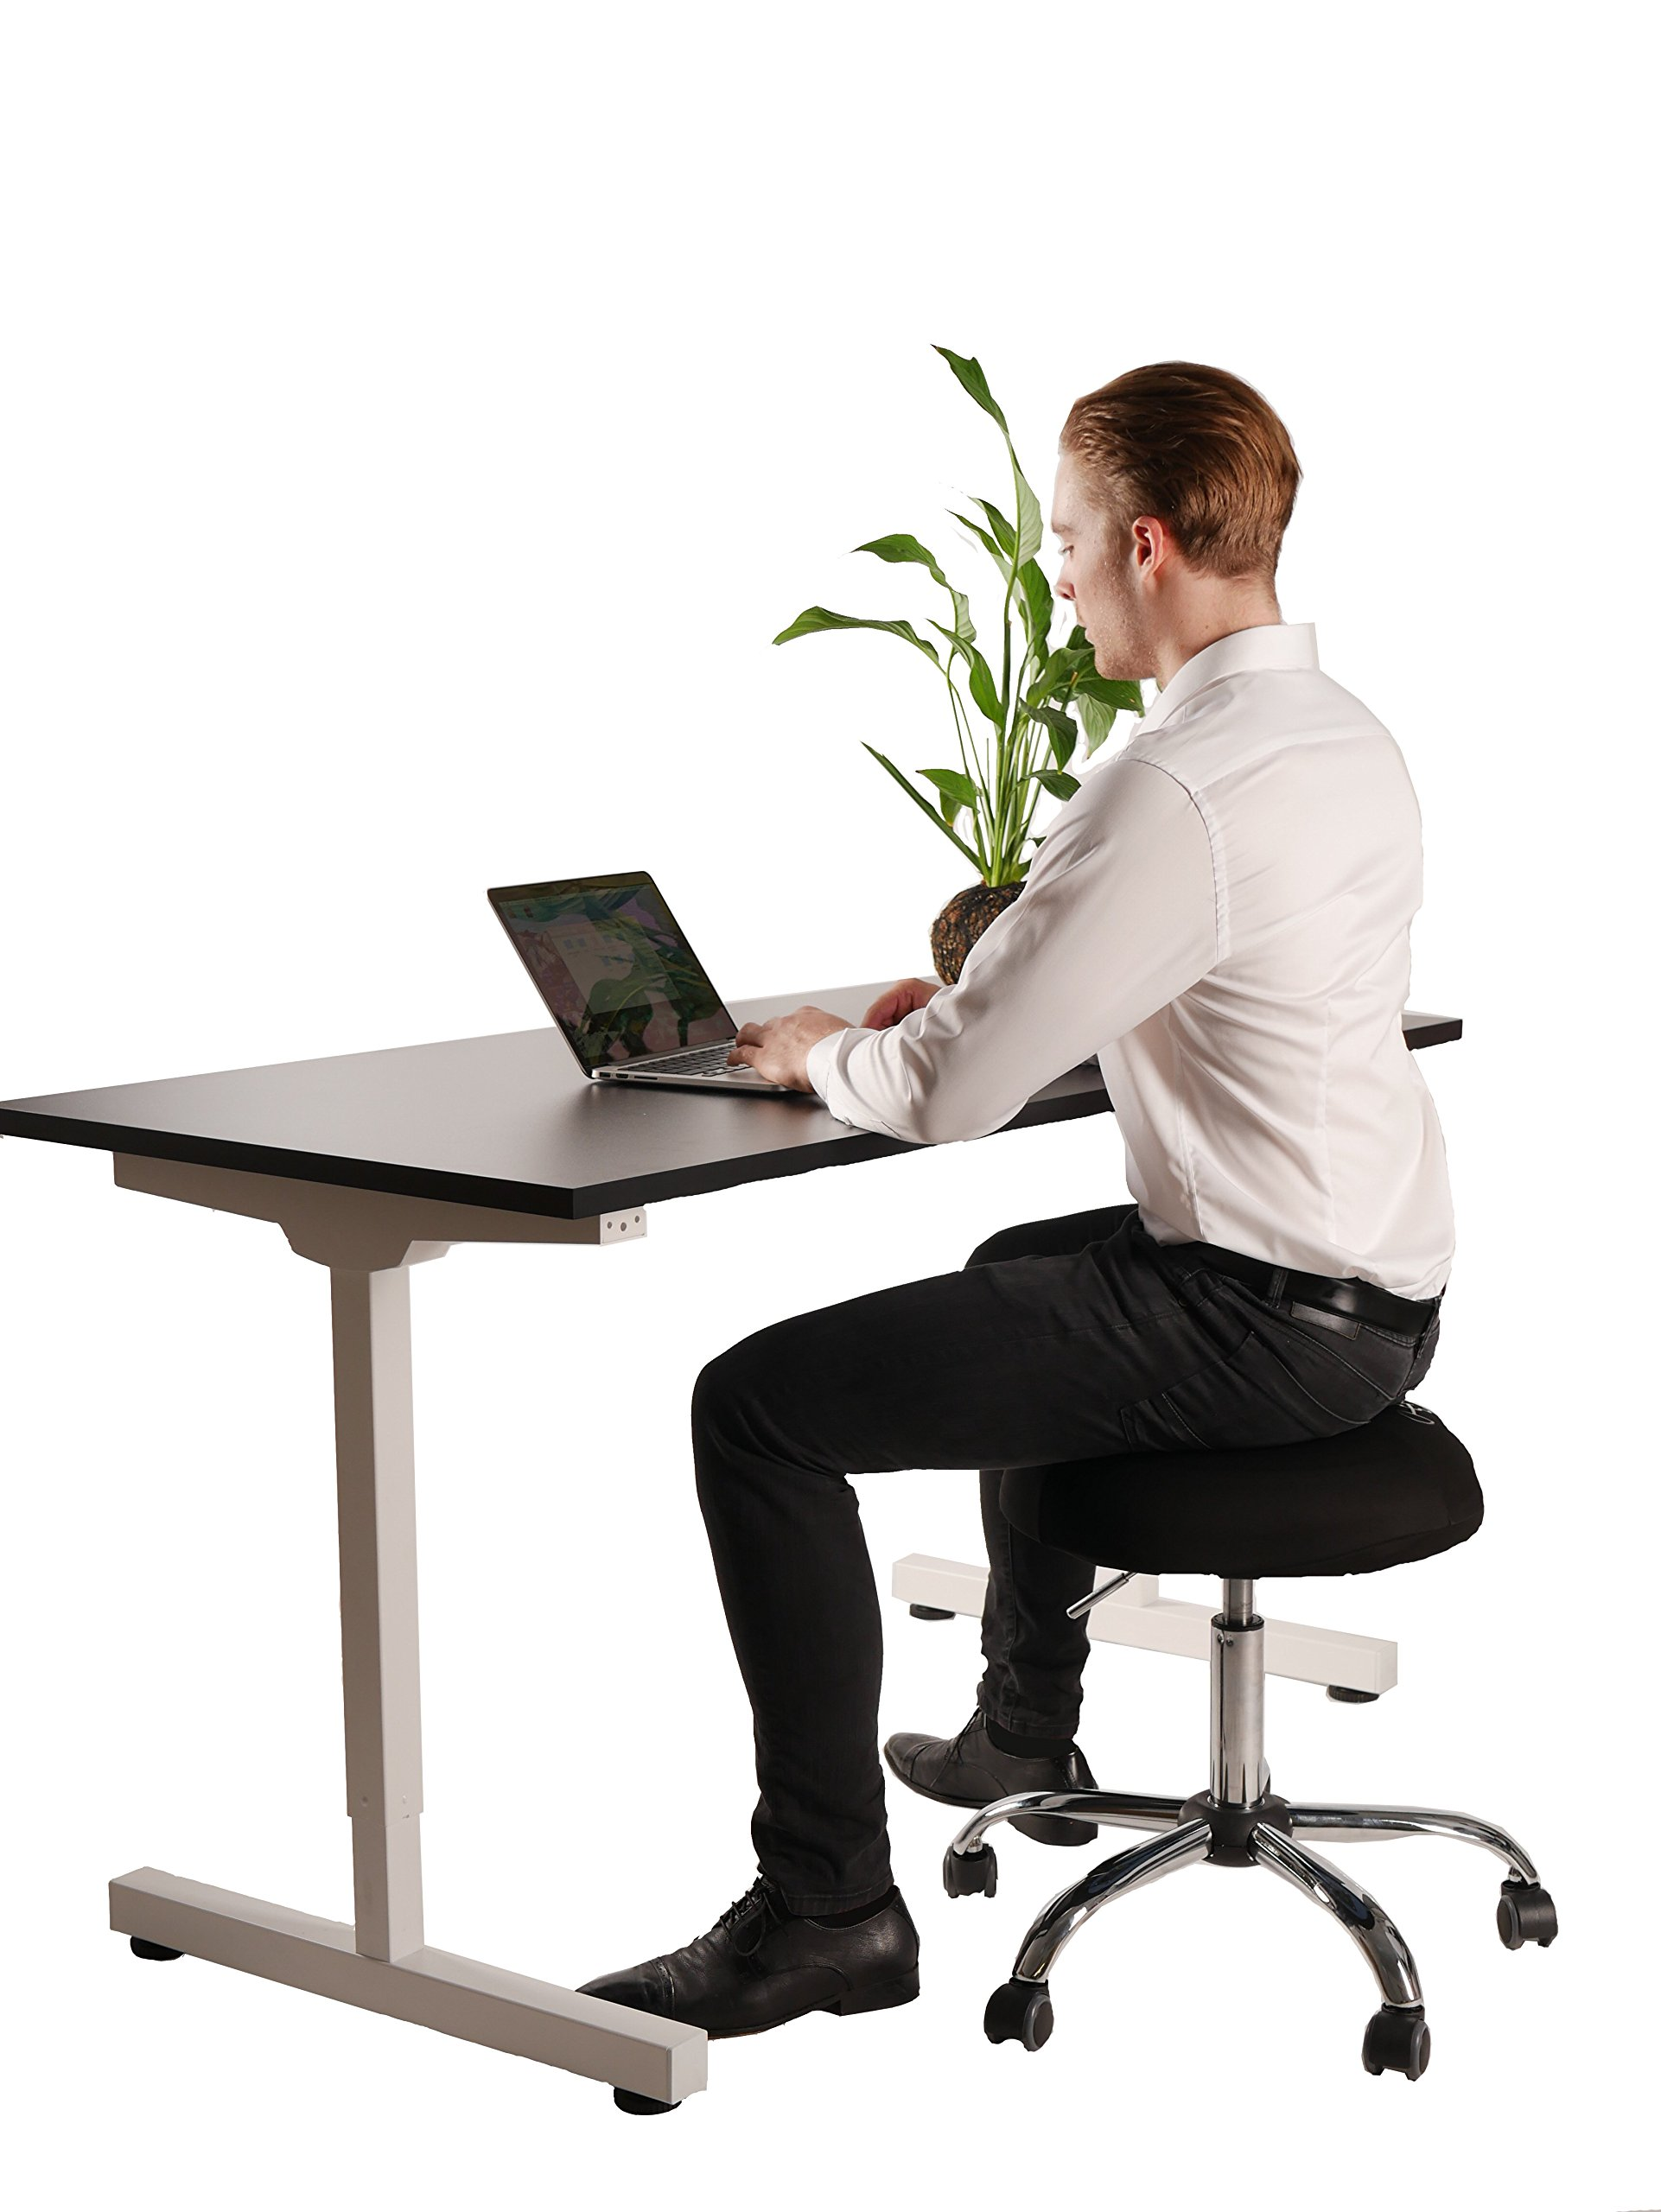 Balance Ball Office Chair Stool, Jellyfish Adjustable Chair by Coreseat | Ergonomic Exercise Office Chair that Provides Stability and Core Strength for the Home, Office or Classroom by Coreseat (Image #2)